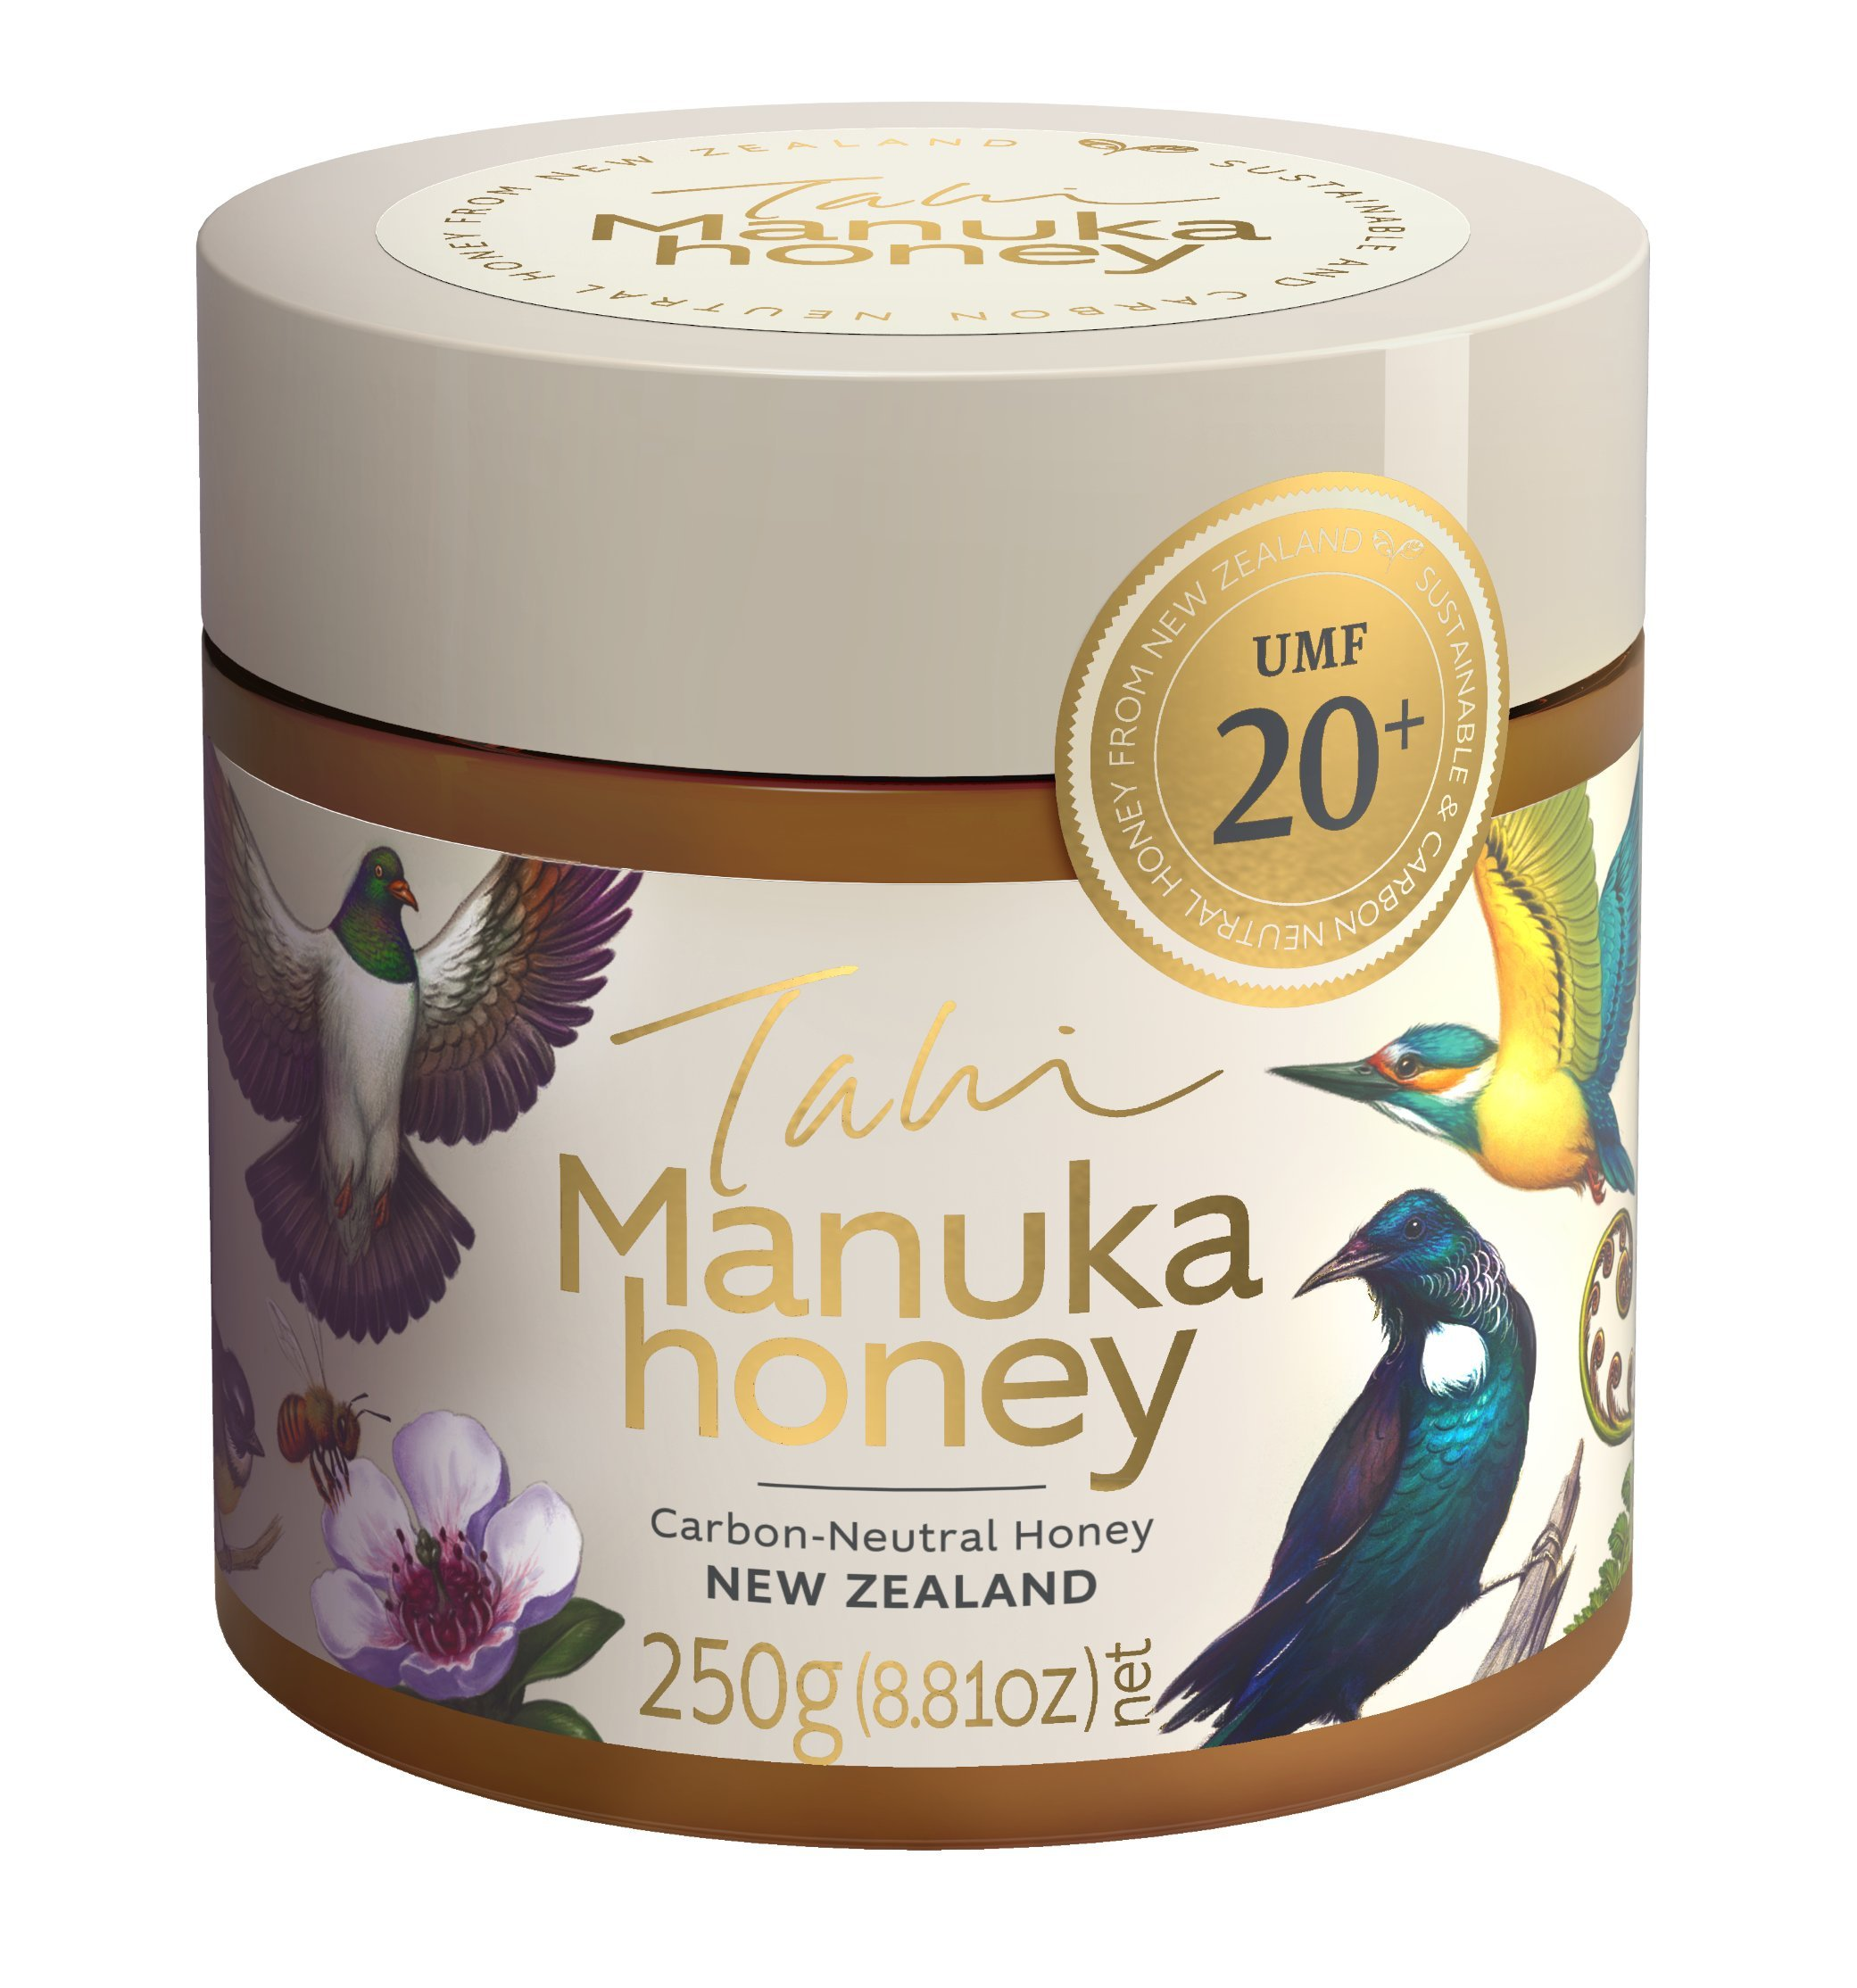 UMF 20+ certified Manuka Honey made in the wild in New Zealand by the eco-friendly bee-friendly people at Tahi (250gm)